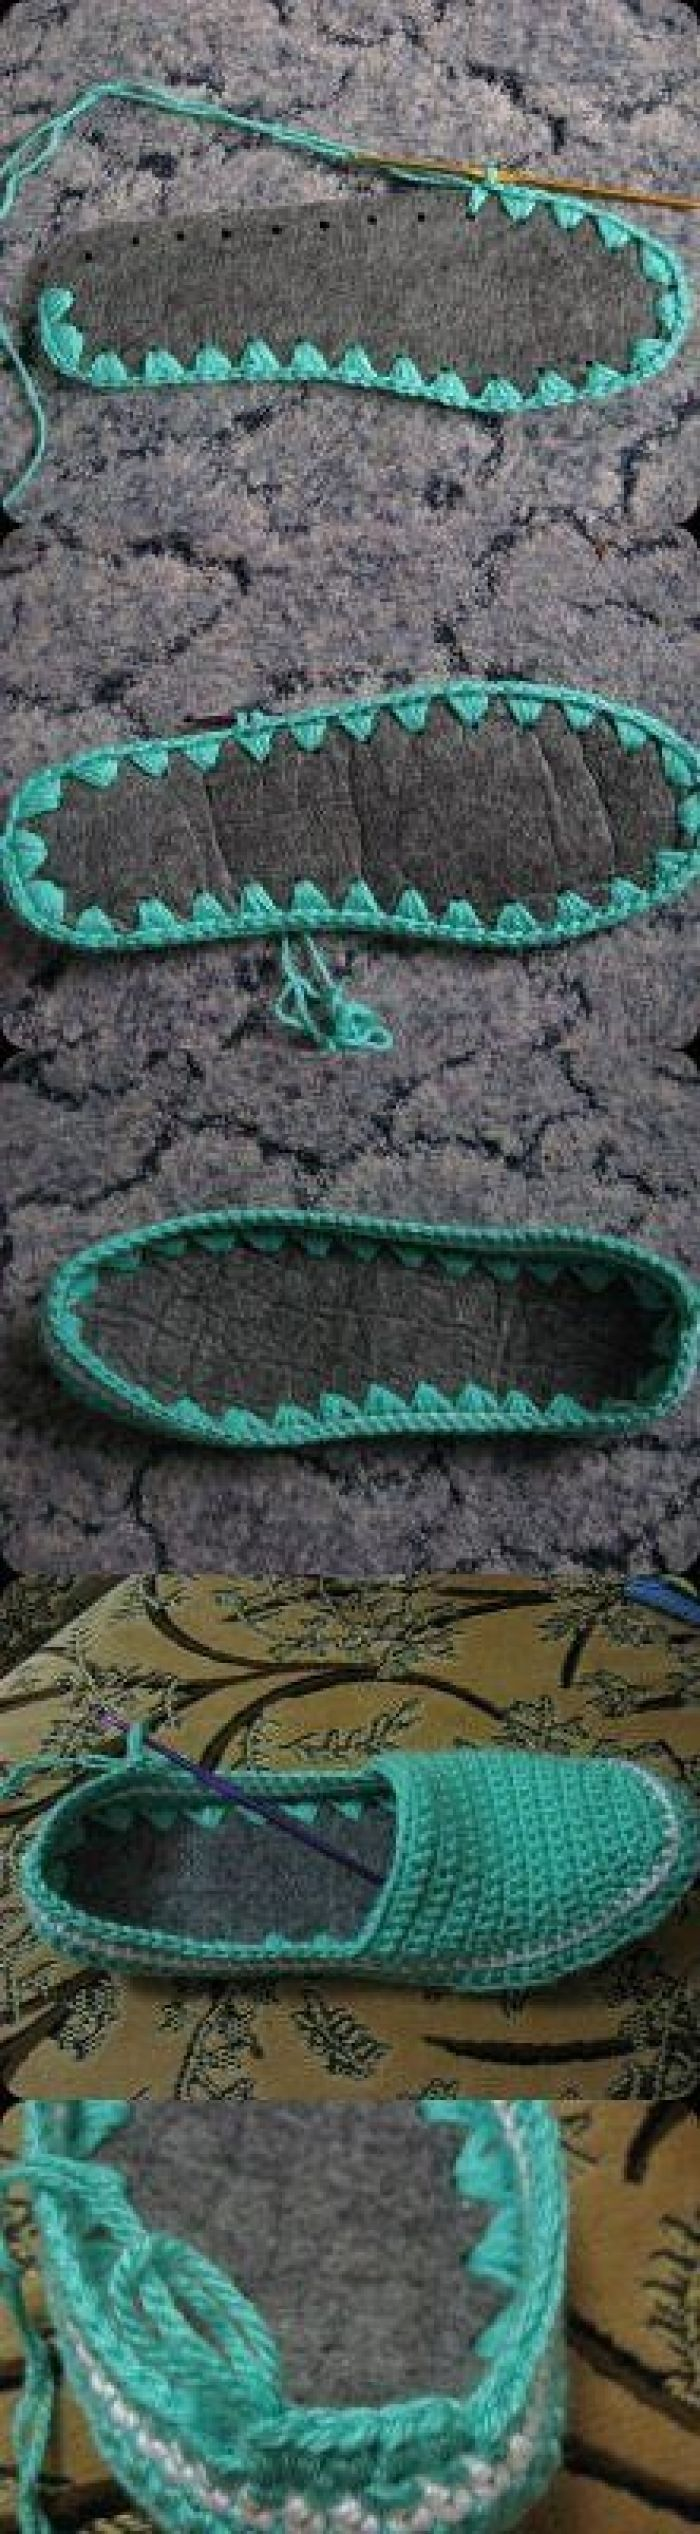 crochet slippers attached to a felt? leather? fabric? bottom. These would last so much longer!